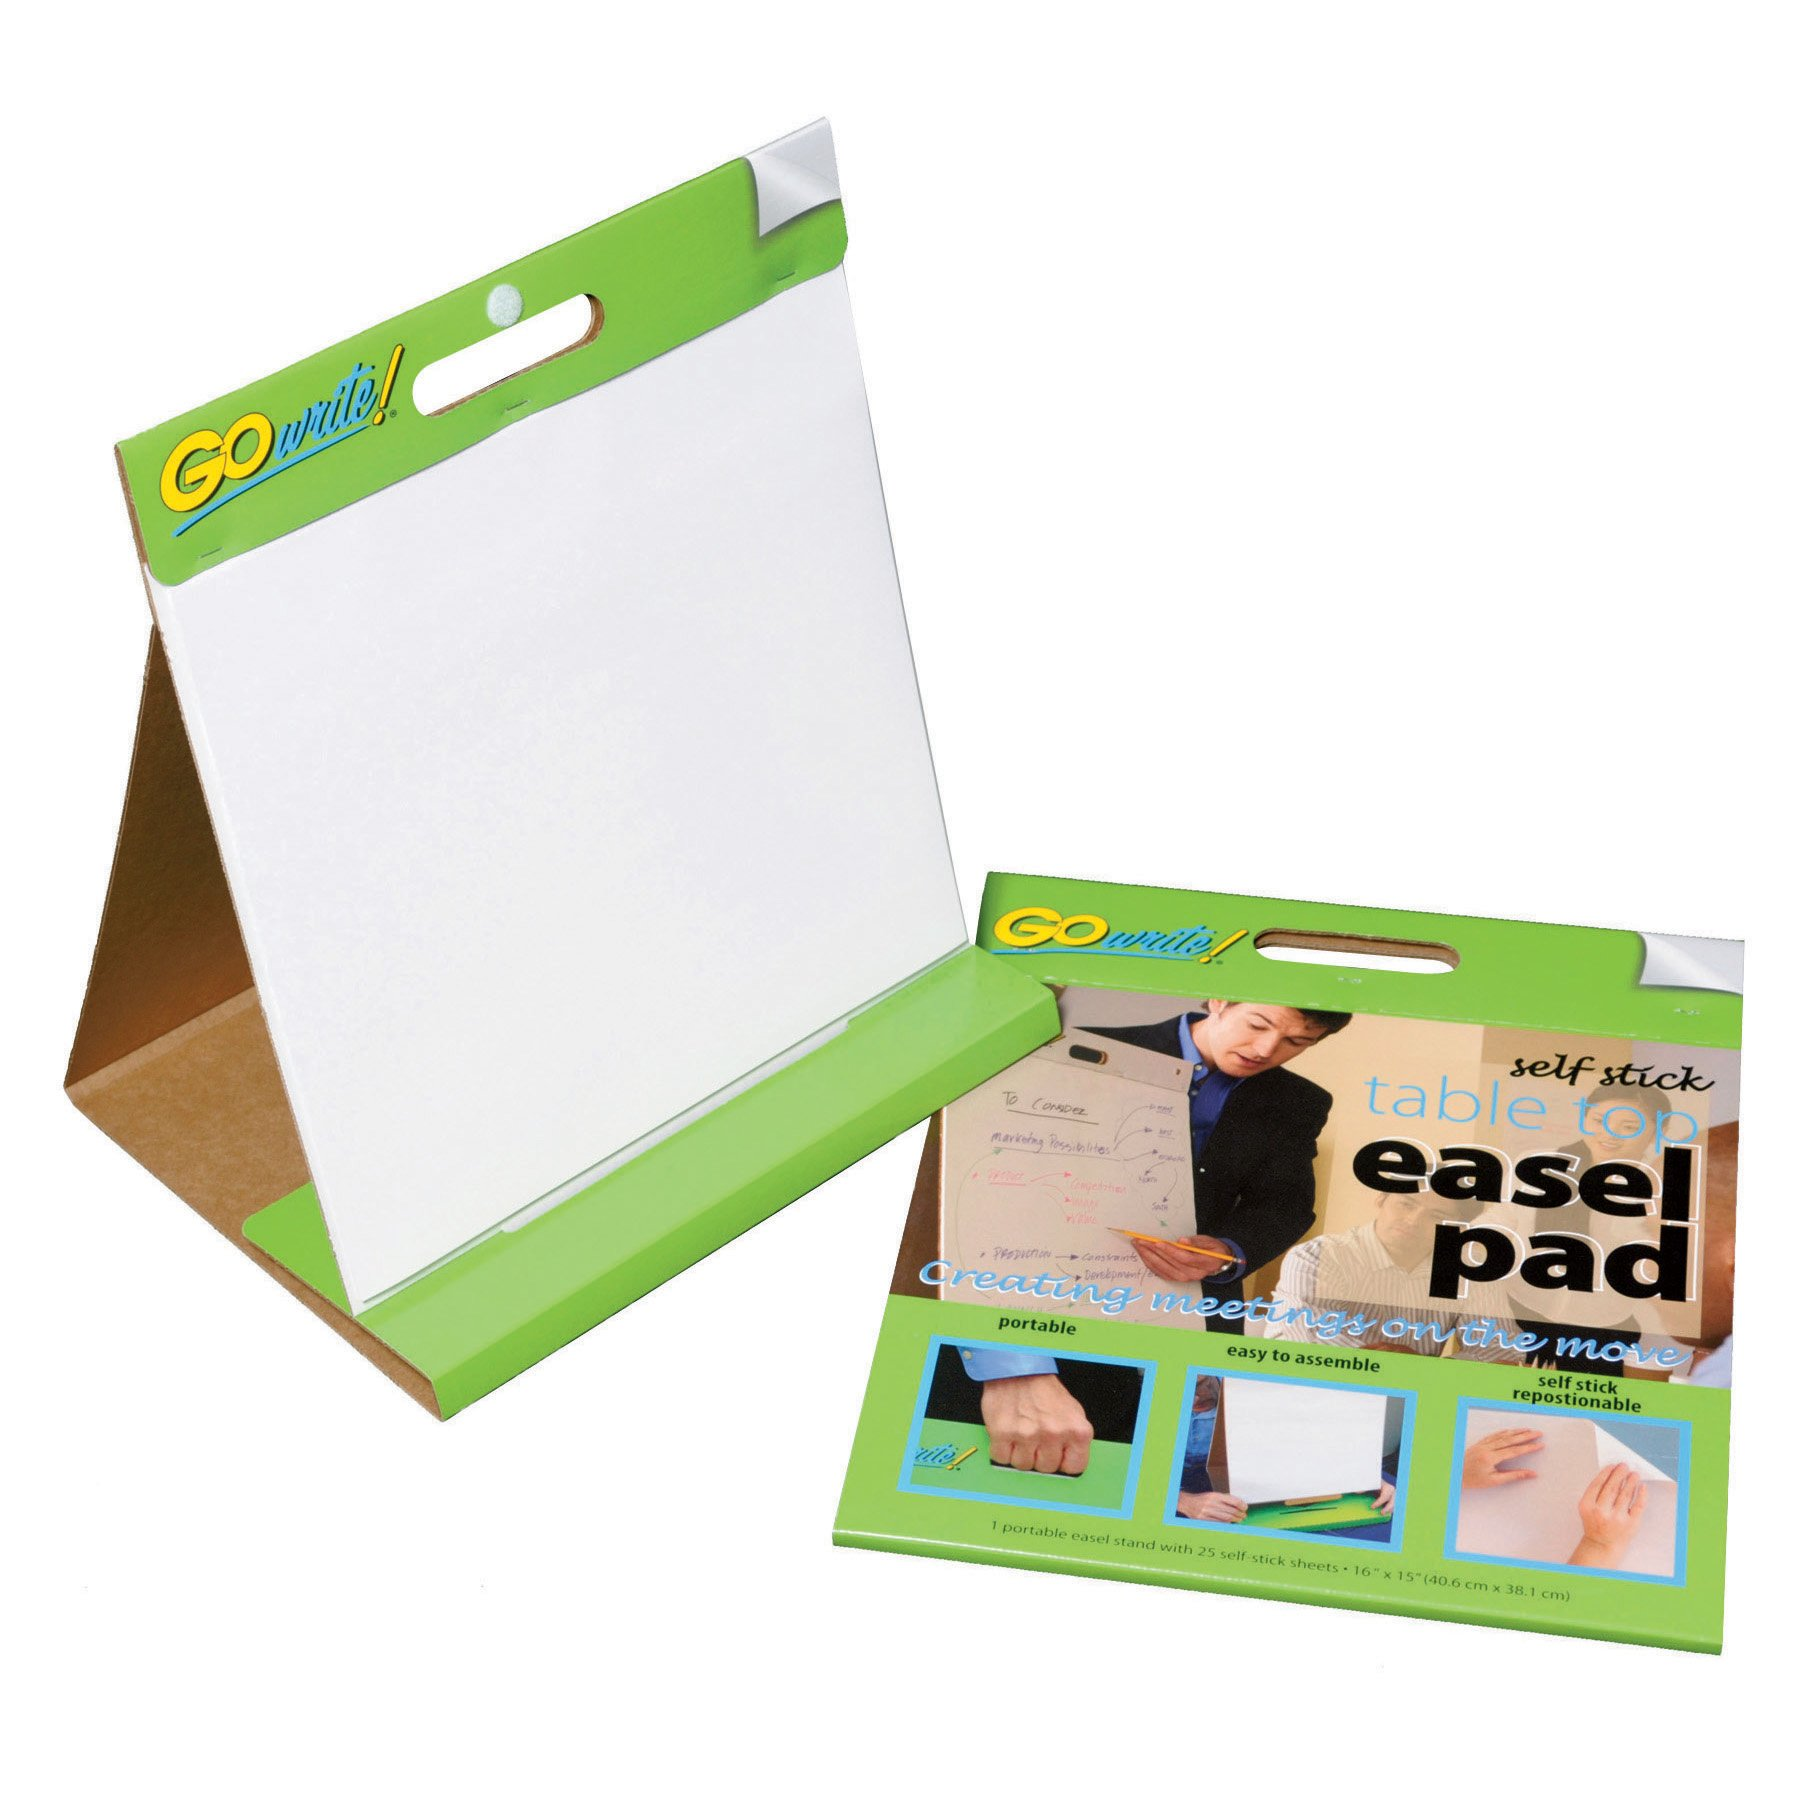 GoWrite! Self-Stick Table Top Easel Pad, 16''X15'', 25 Sheets